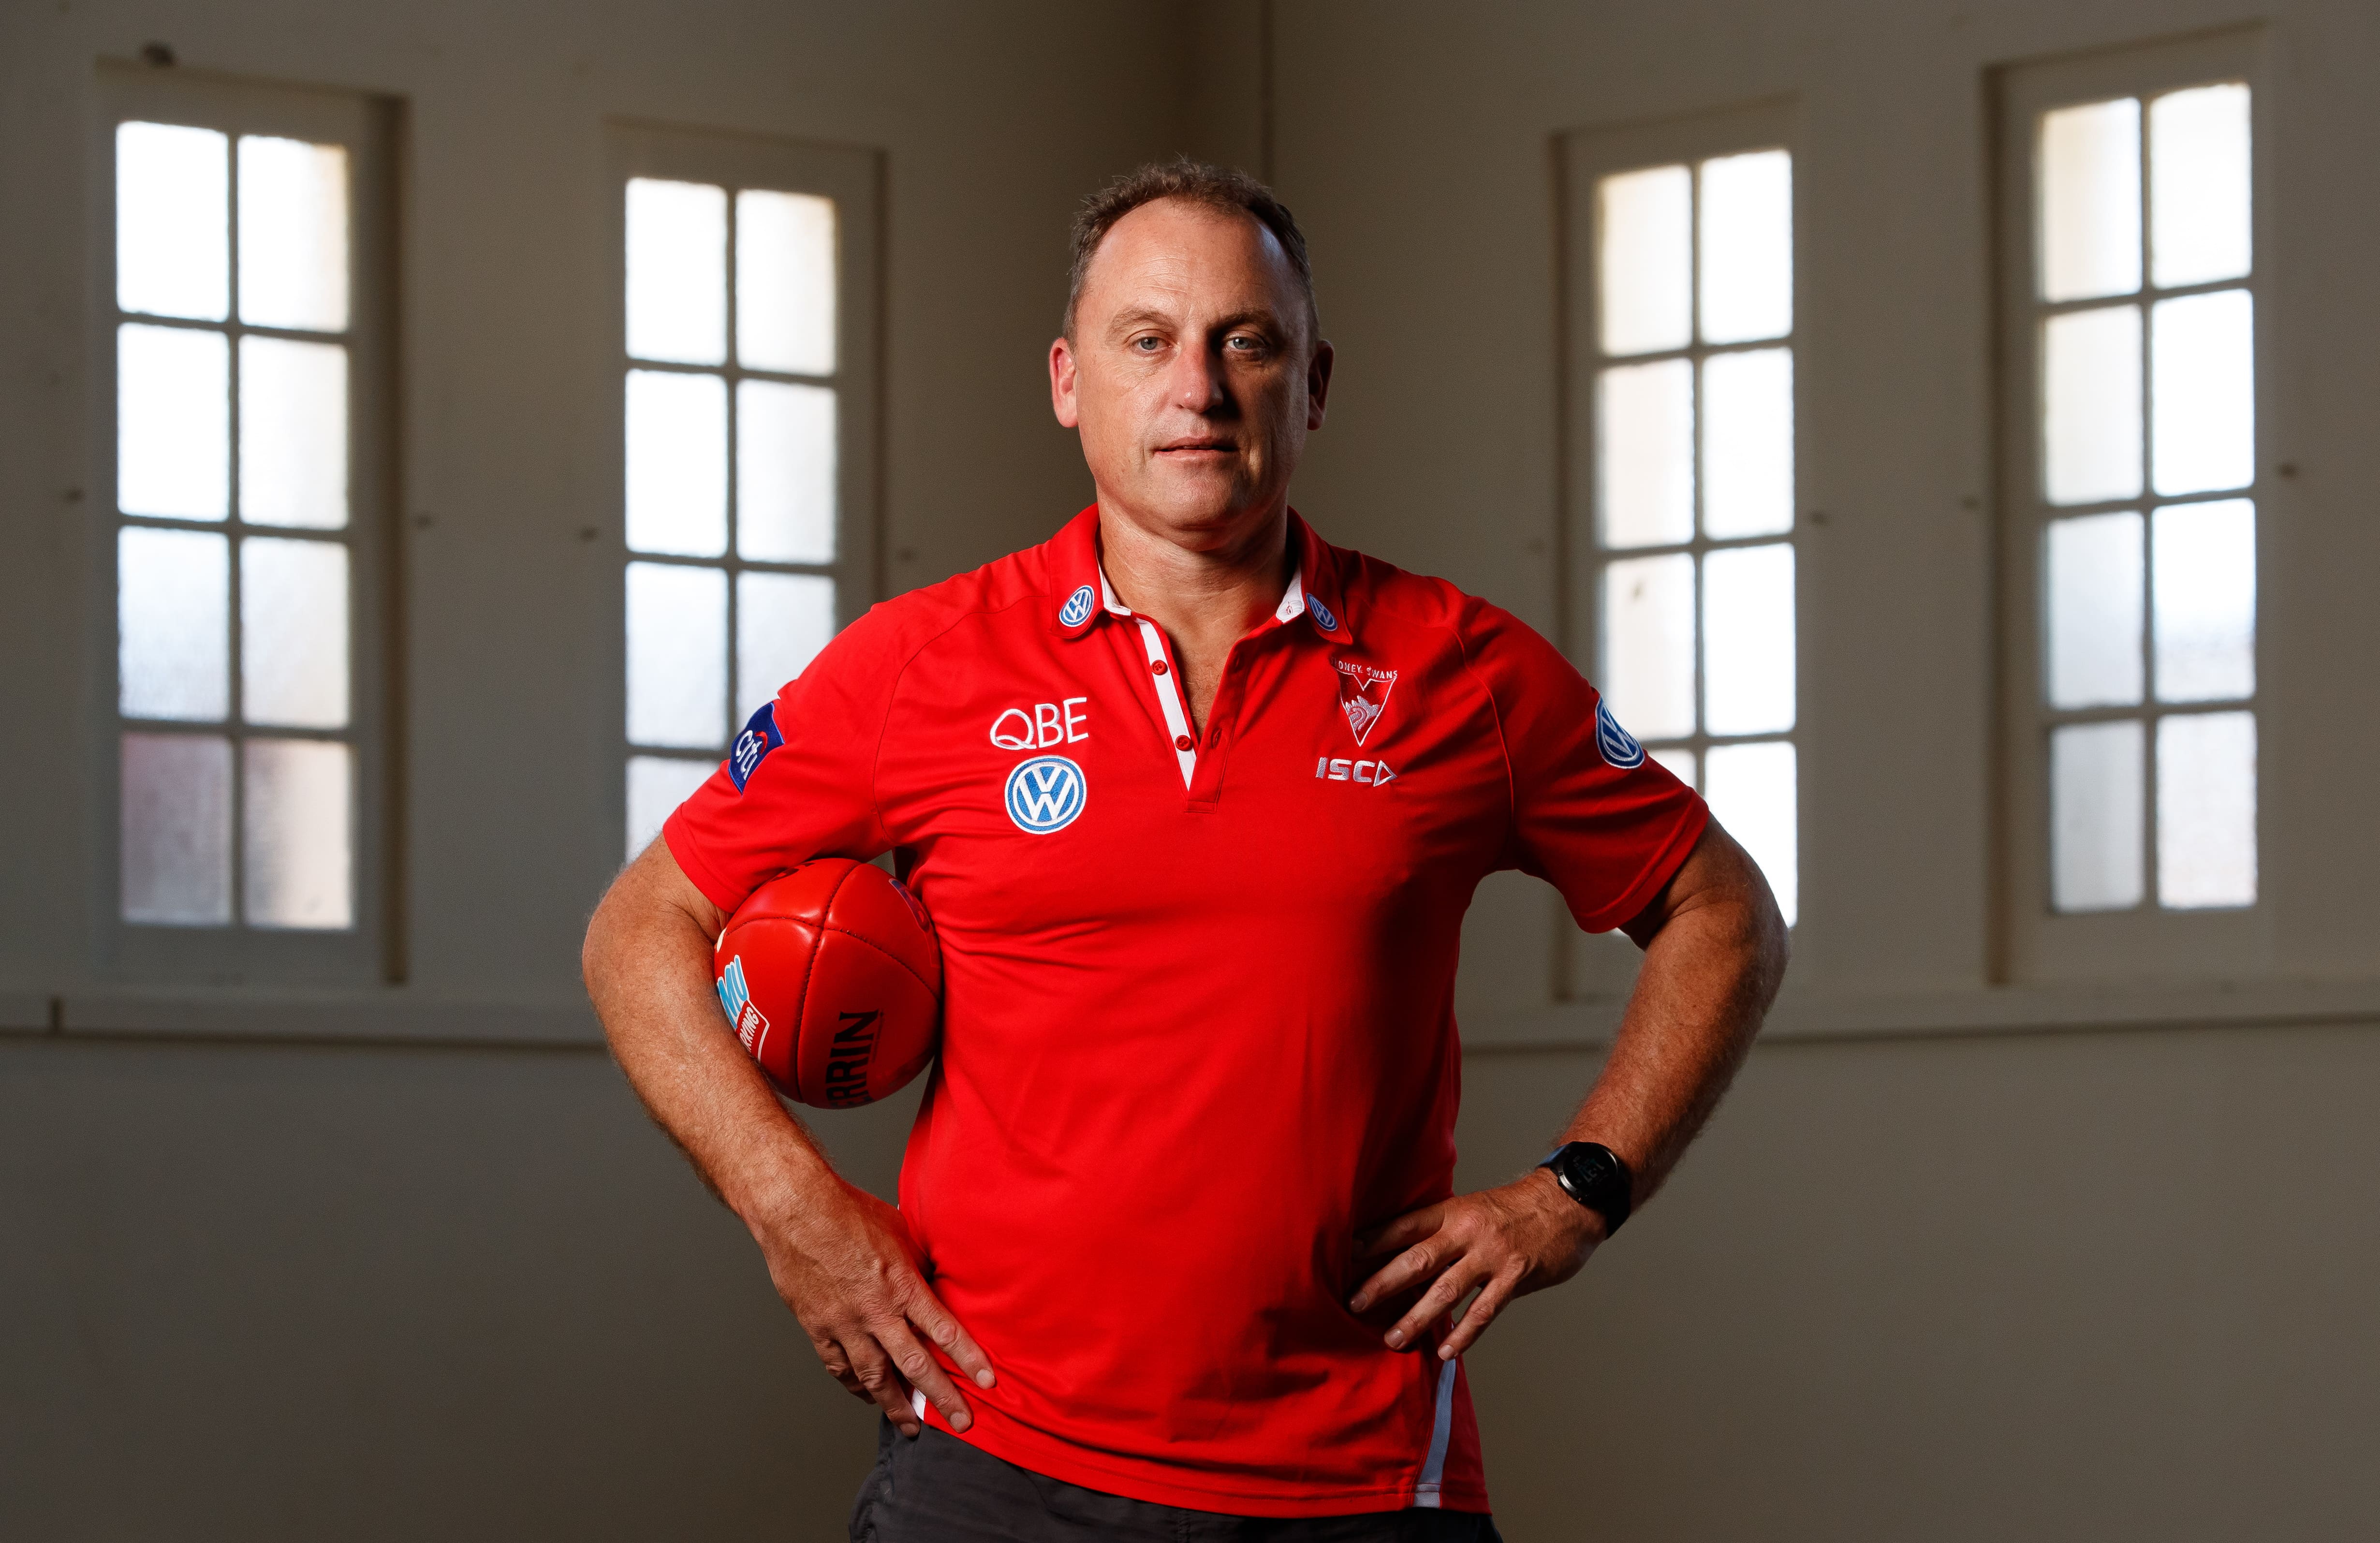 SYDNEY, AUSTRALIA - JANUARY 31: John Longmire, Senior Coach of the Swans poses for a photograph during the Sydney Swans 2019 official team photo day at the Royal Hall of Industries on January 31, 2019 in Sydney, Australia. (Photo by Adam Trafford/AFL Media)